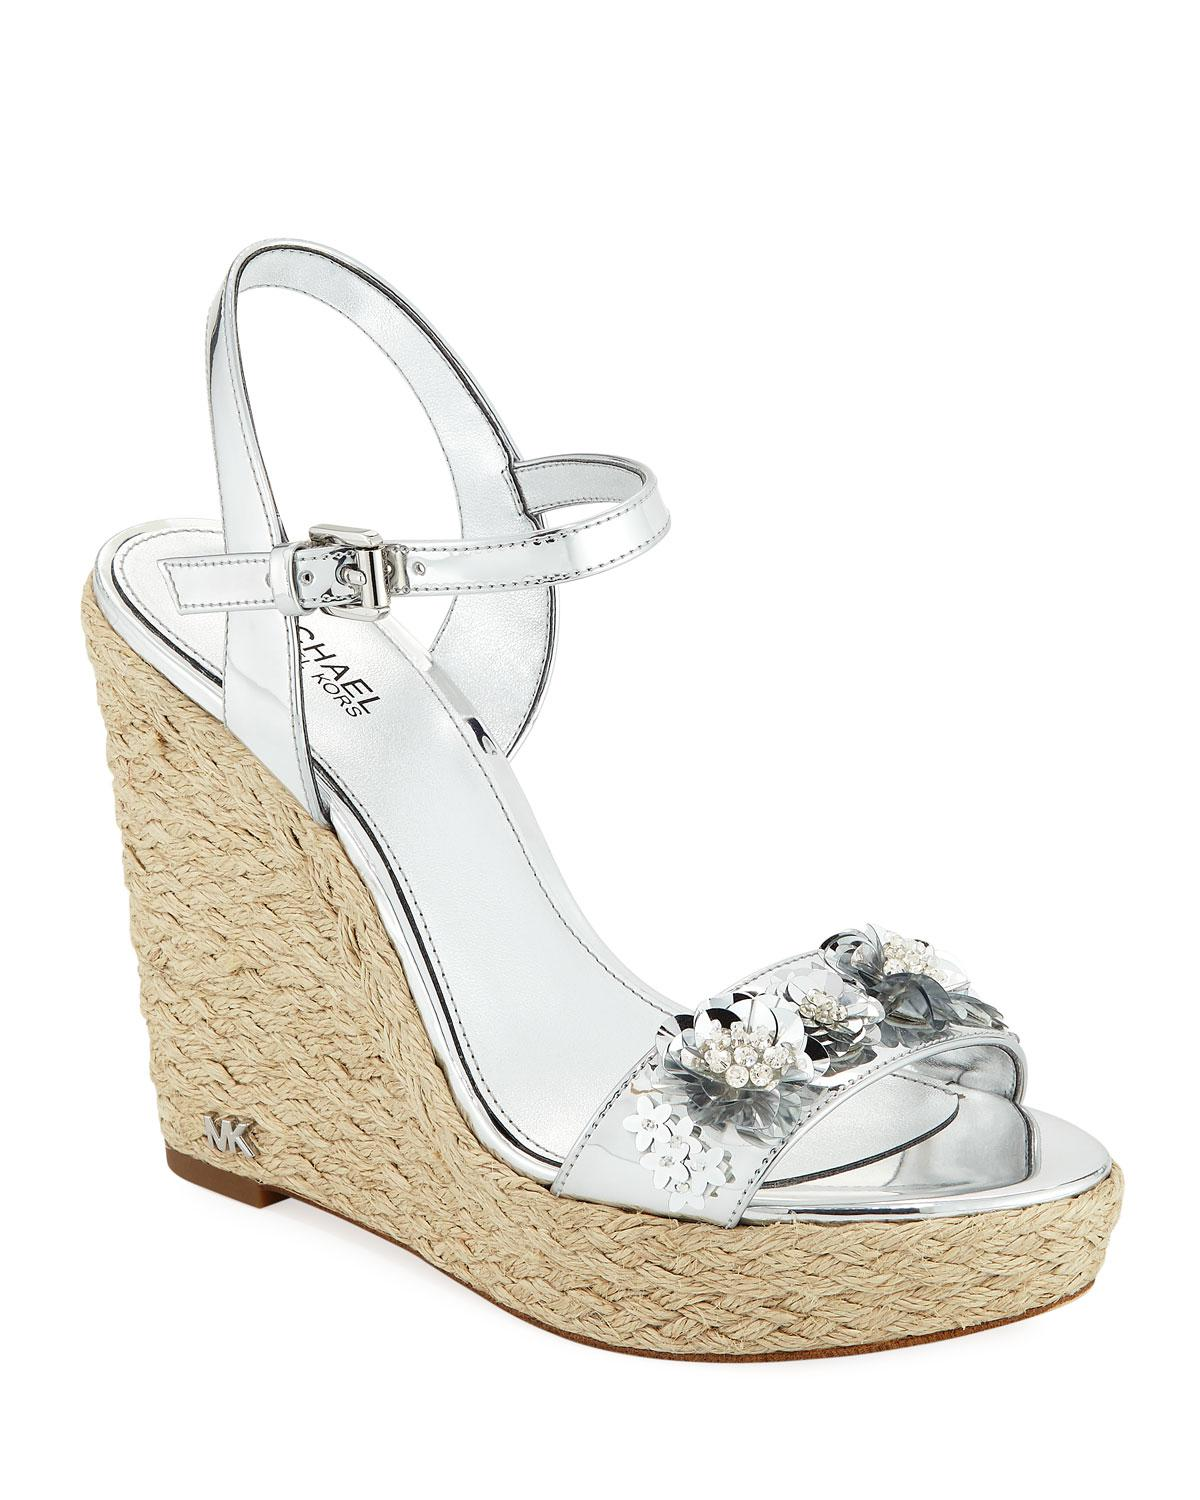 282db21f793 Lyst - MICHAEL Michael Kors Jill Metallic Leather Espadrille Wedge ...